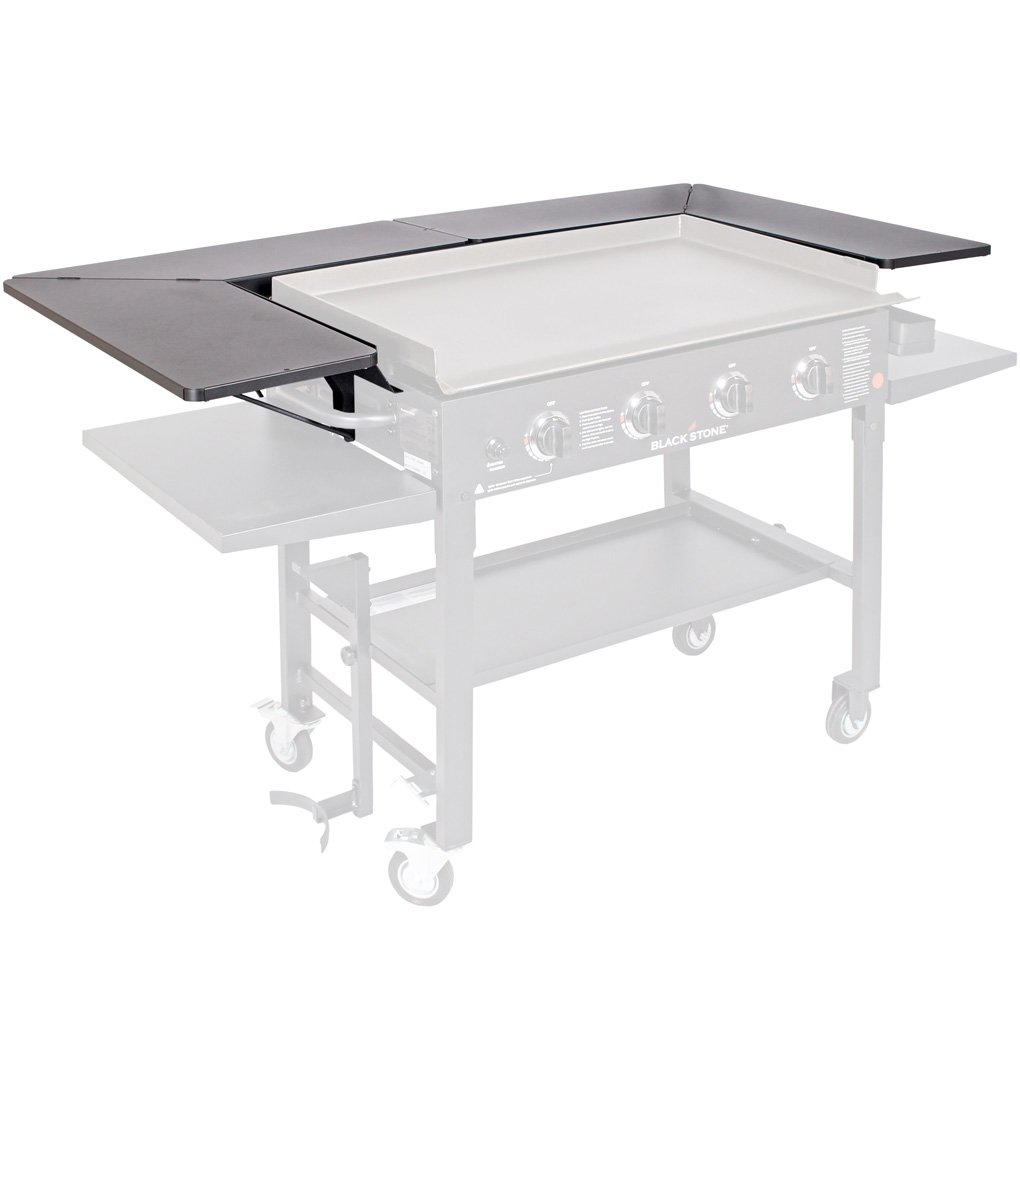 Blackstone 36″ Griddle Surround Table Accessory